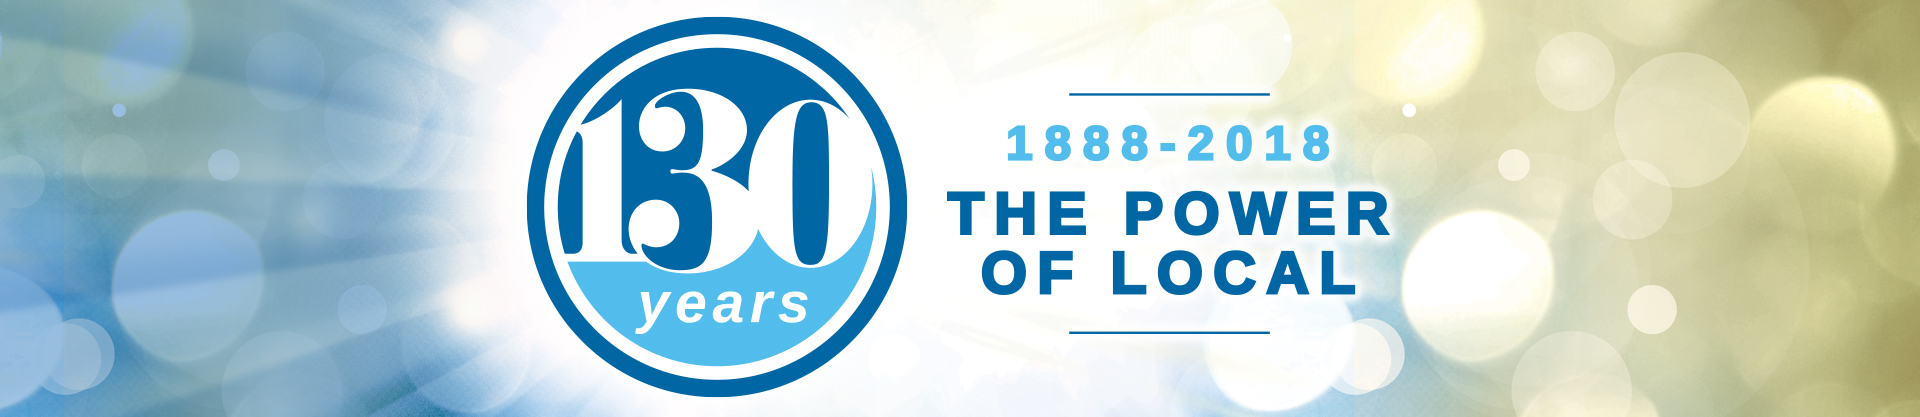 Citizens National Bank celebrating 130 years of the Power of Local. 1888 through 2018